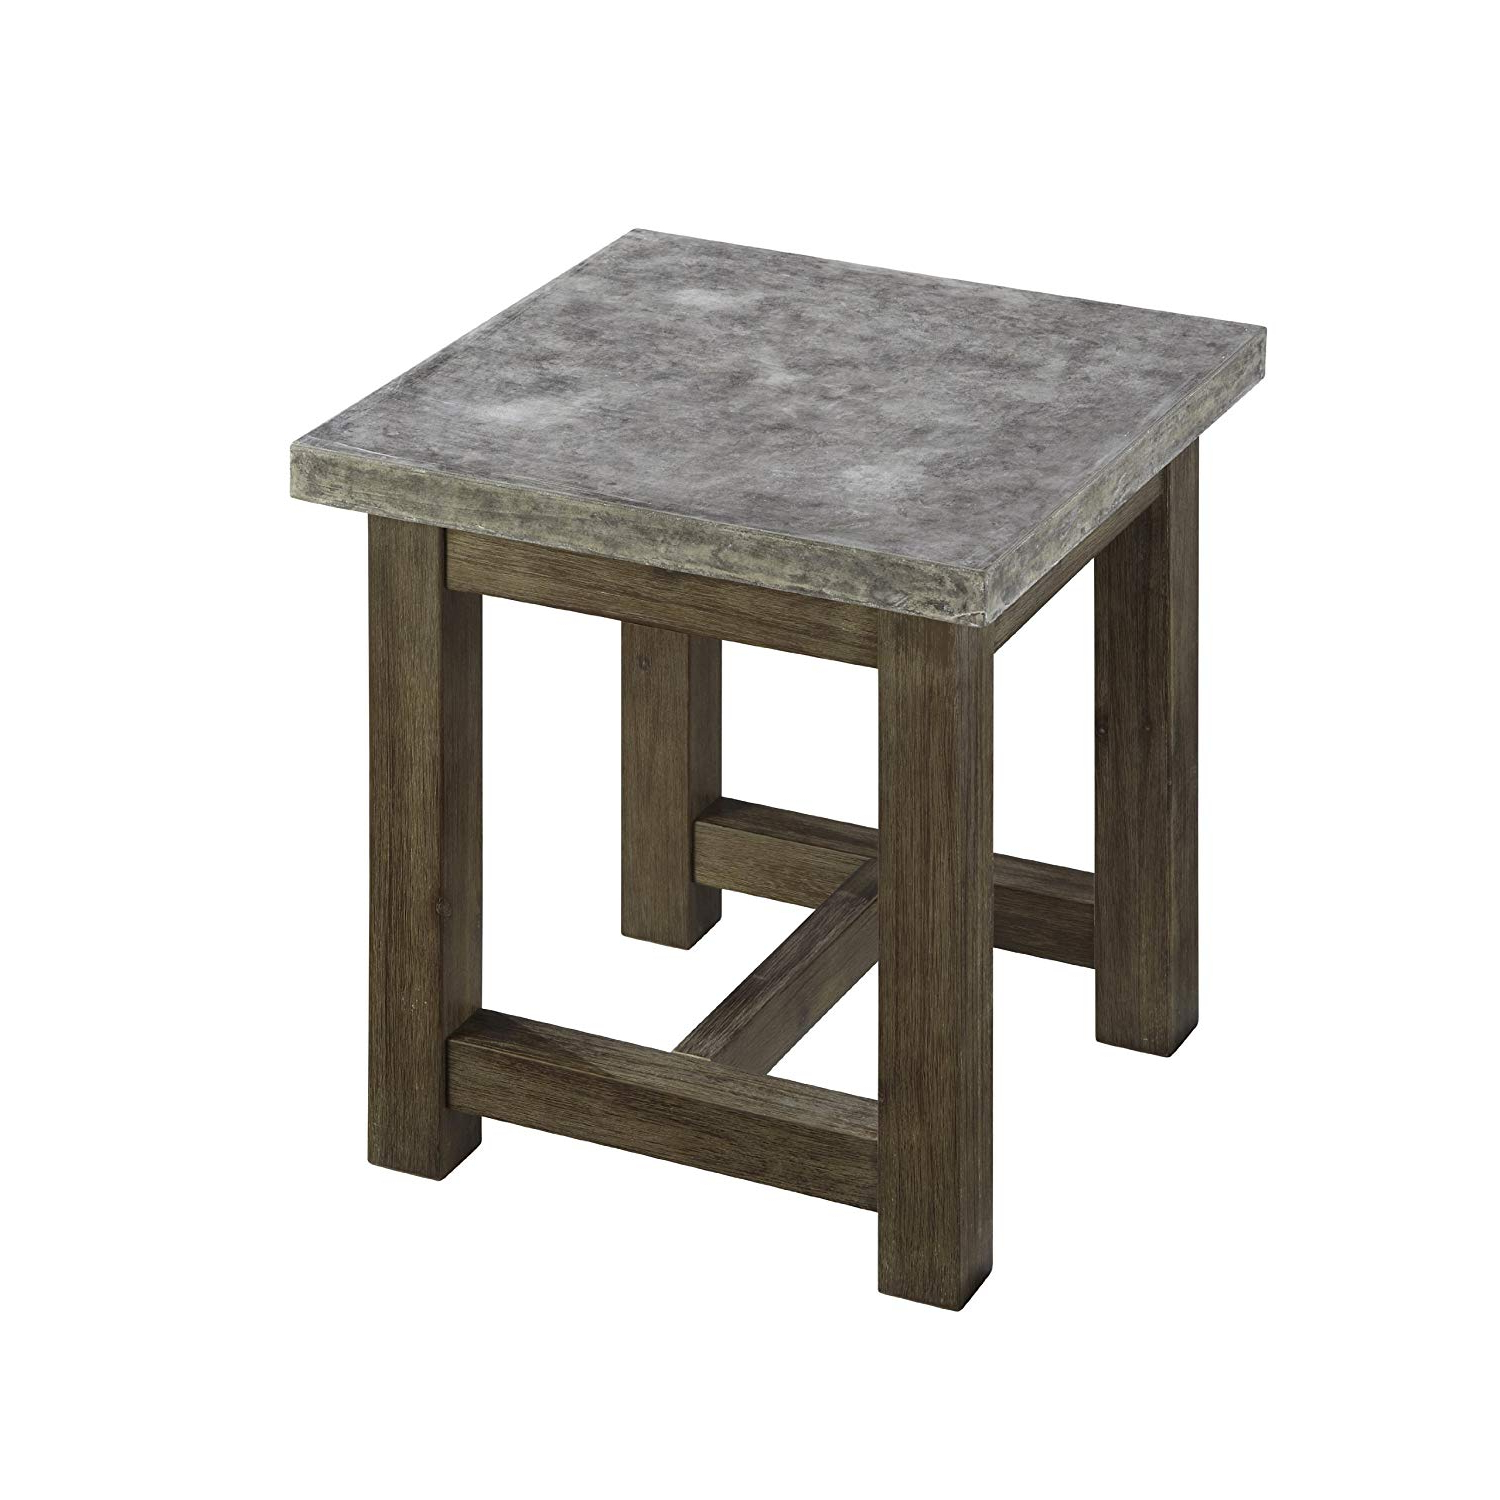 Fashionable Parsons Concrete Top & Brass Base 48x16 Console Tables Within Amazon: Home Styles Concrete Chic End Table: Kitchen & Dining (View 15 of 20)